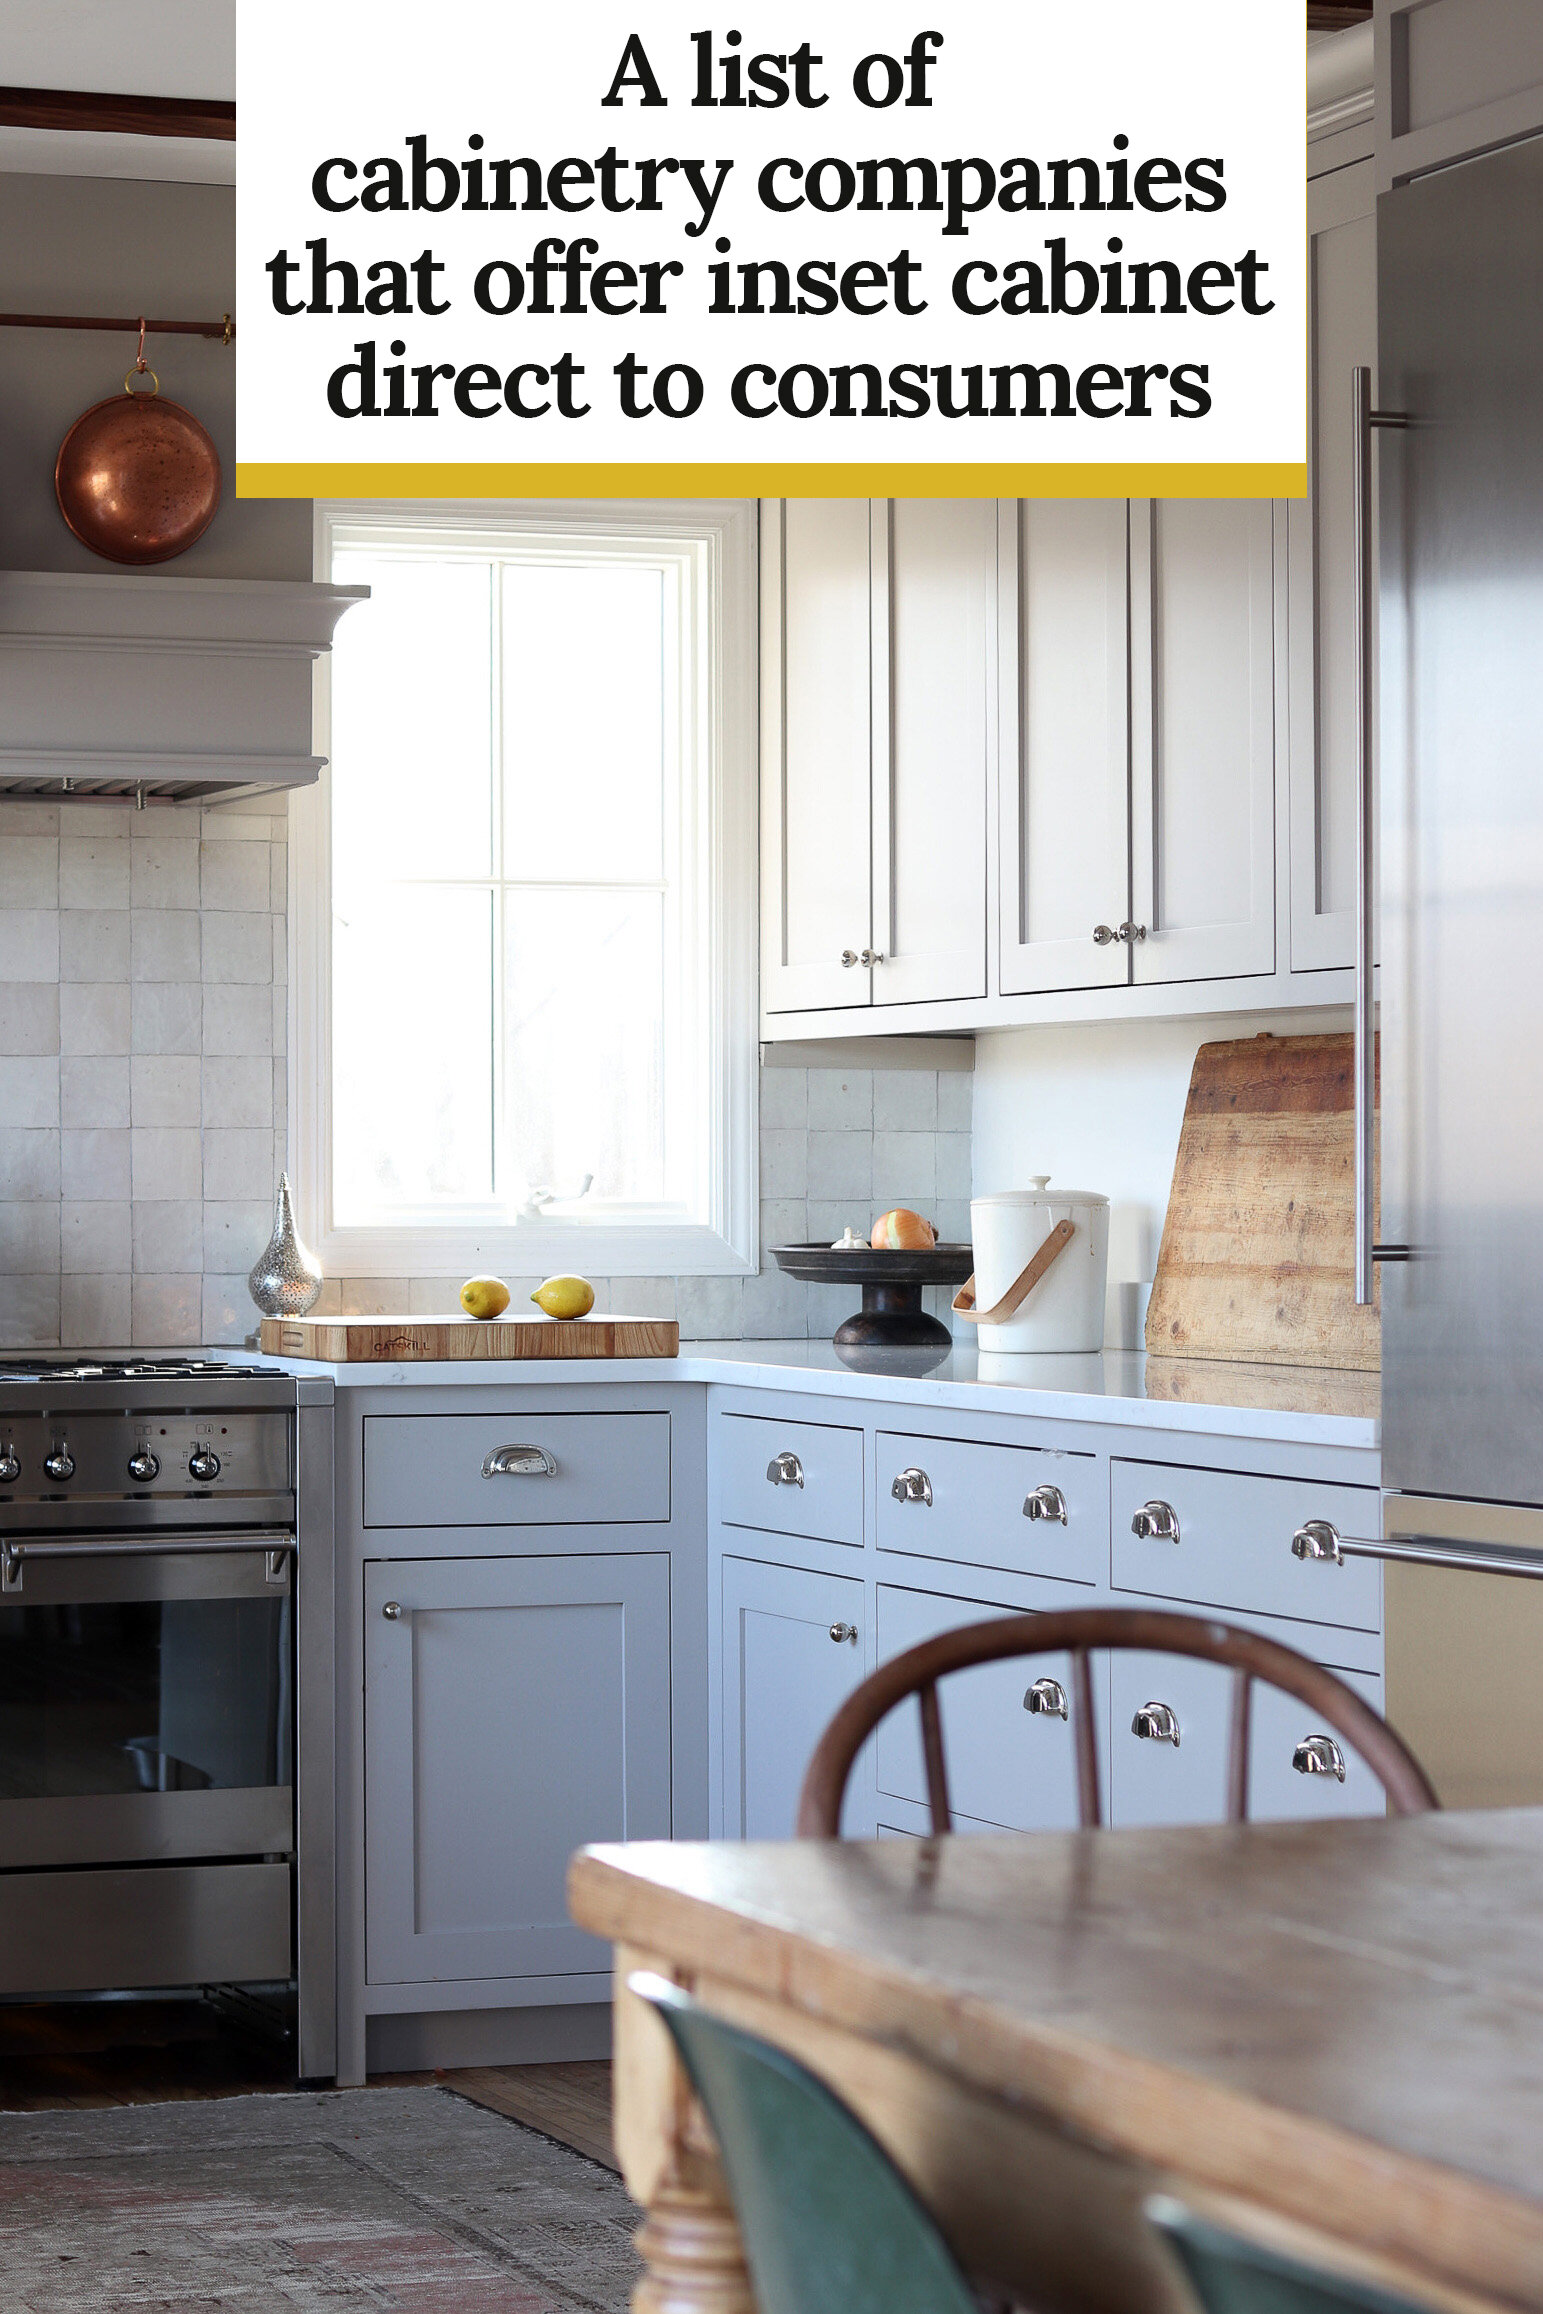 Where To Buy Inset Cabinets Direct The Gold Hive